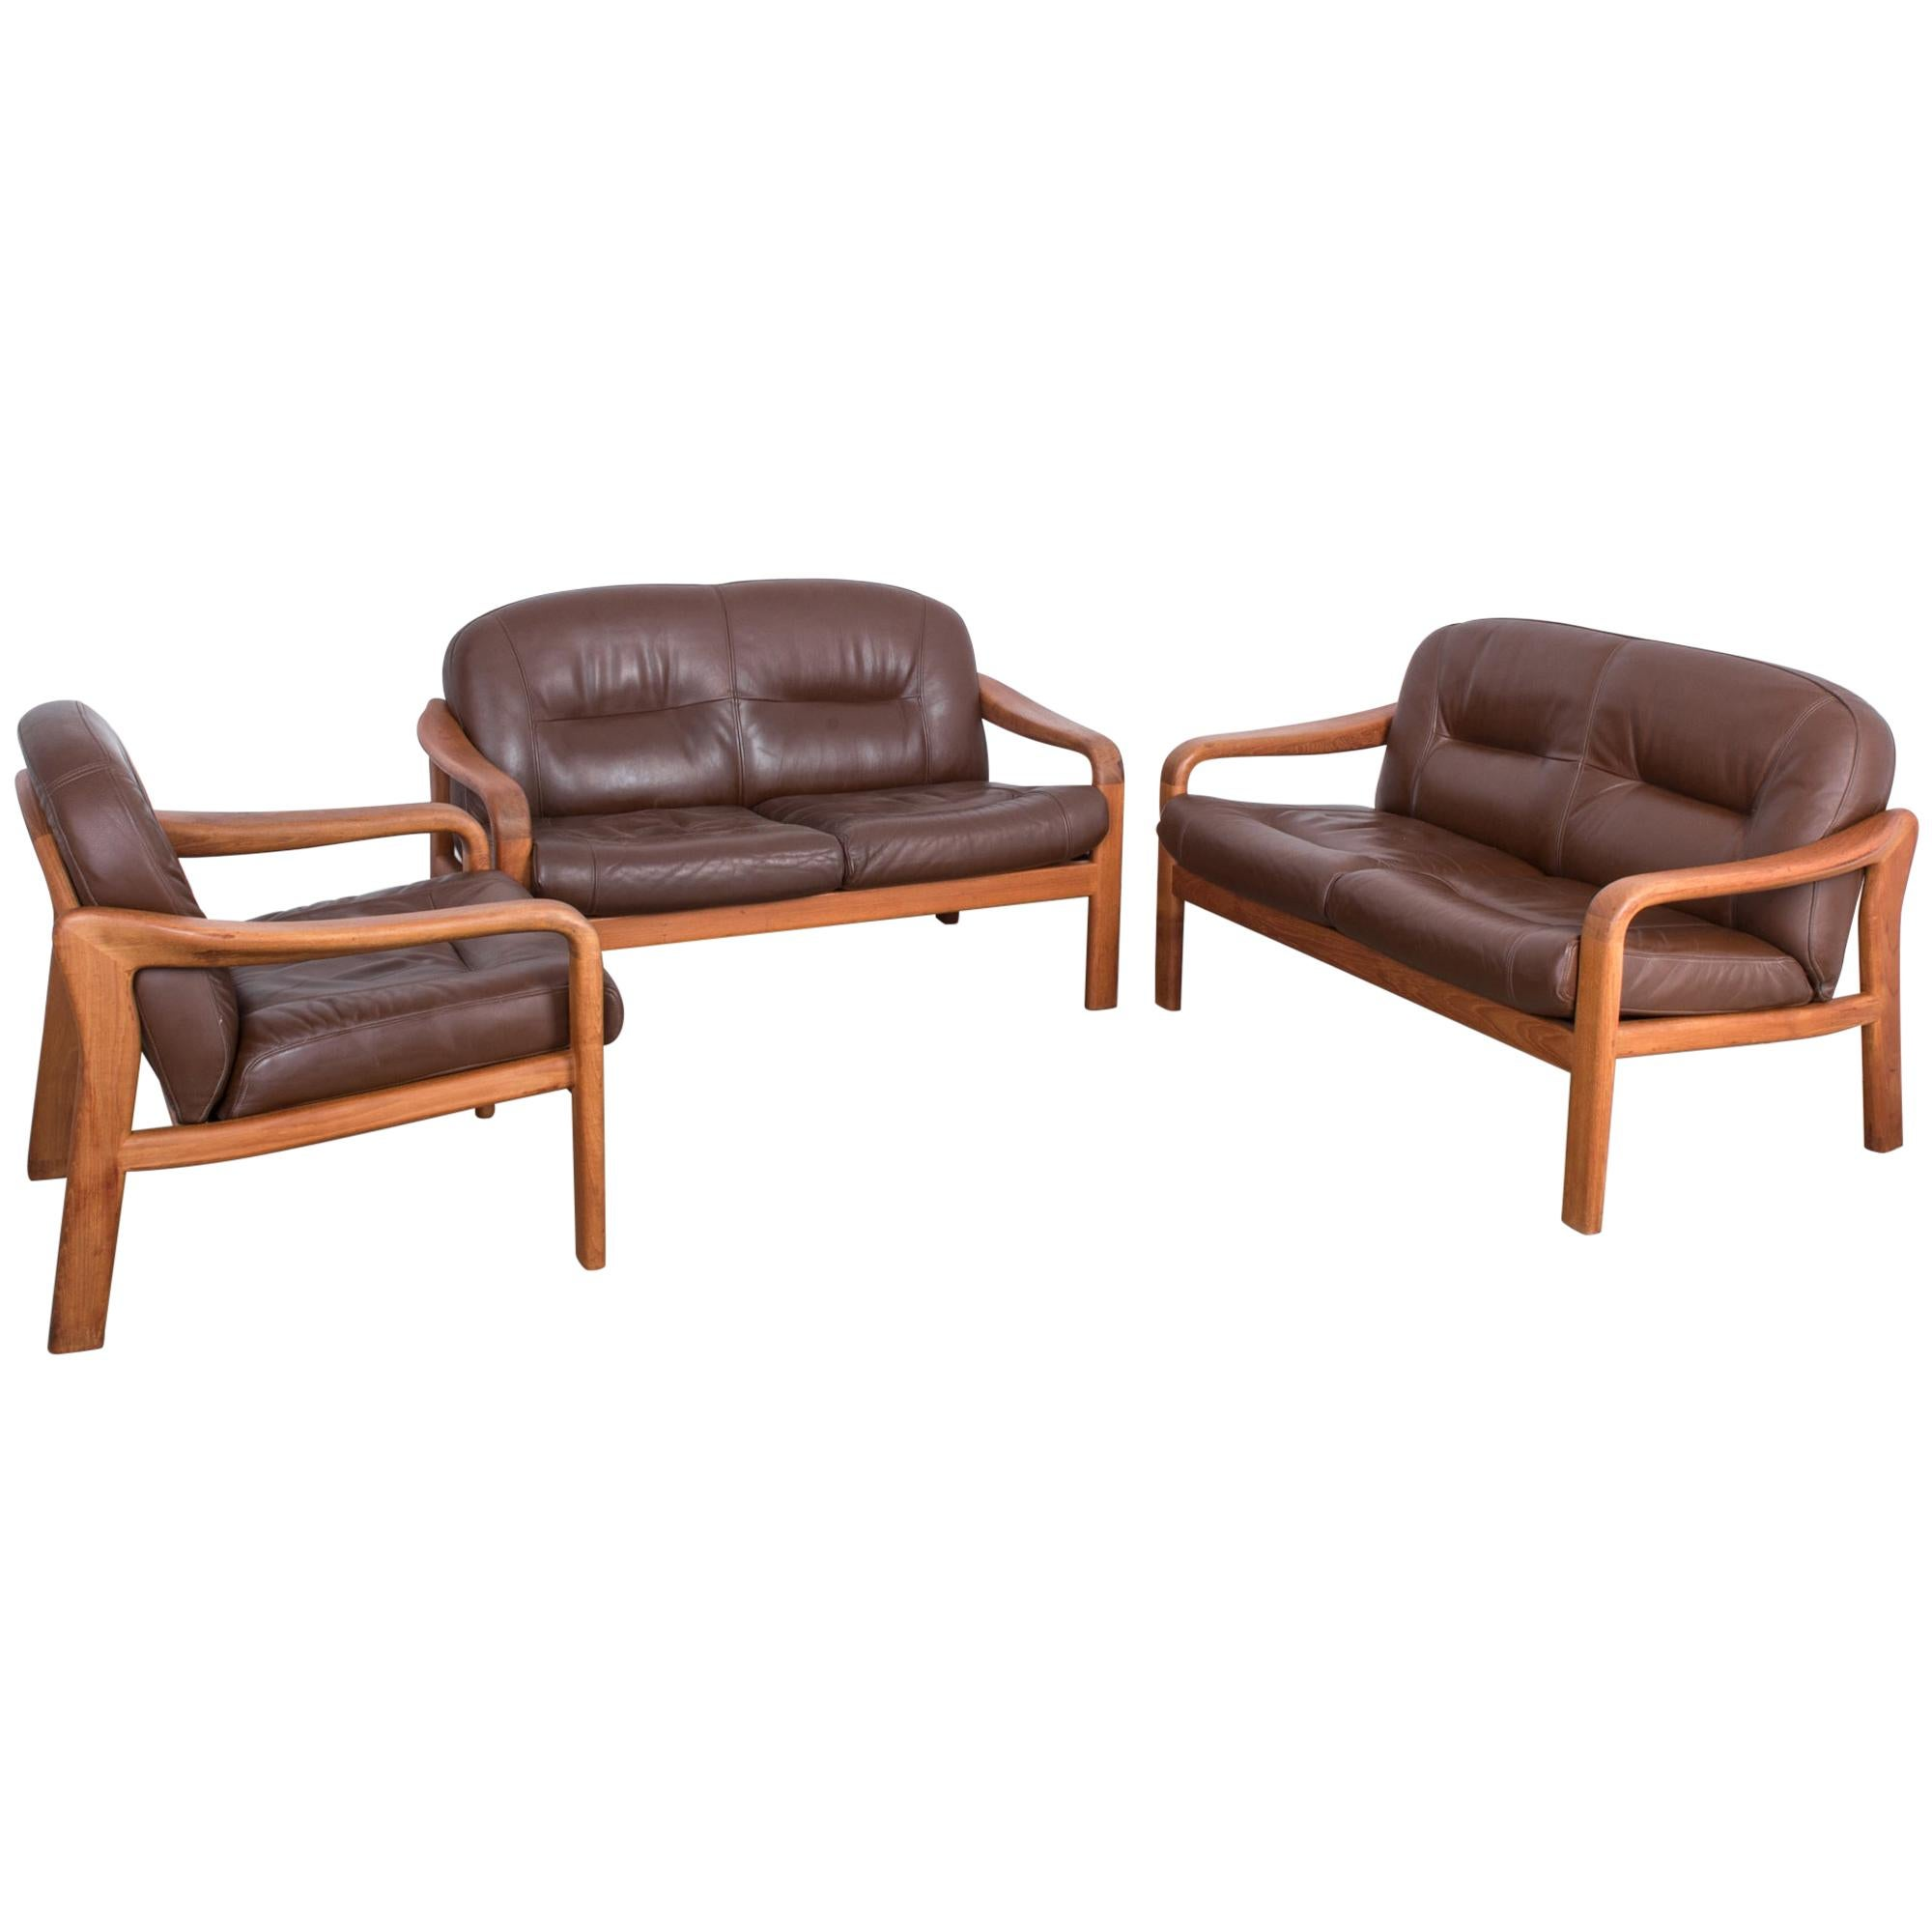 1970s Danish Modern Leather Sofas and Armchair, Set of Three